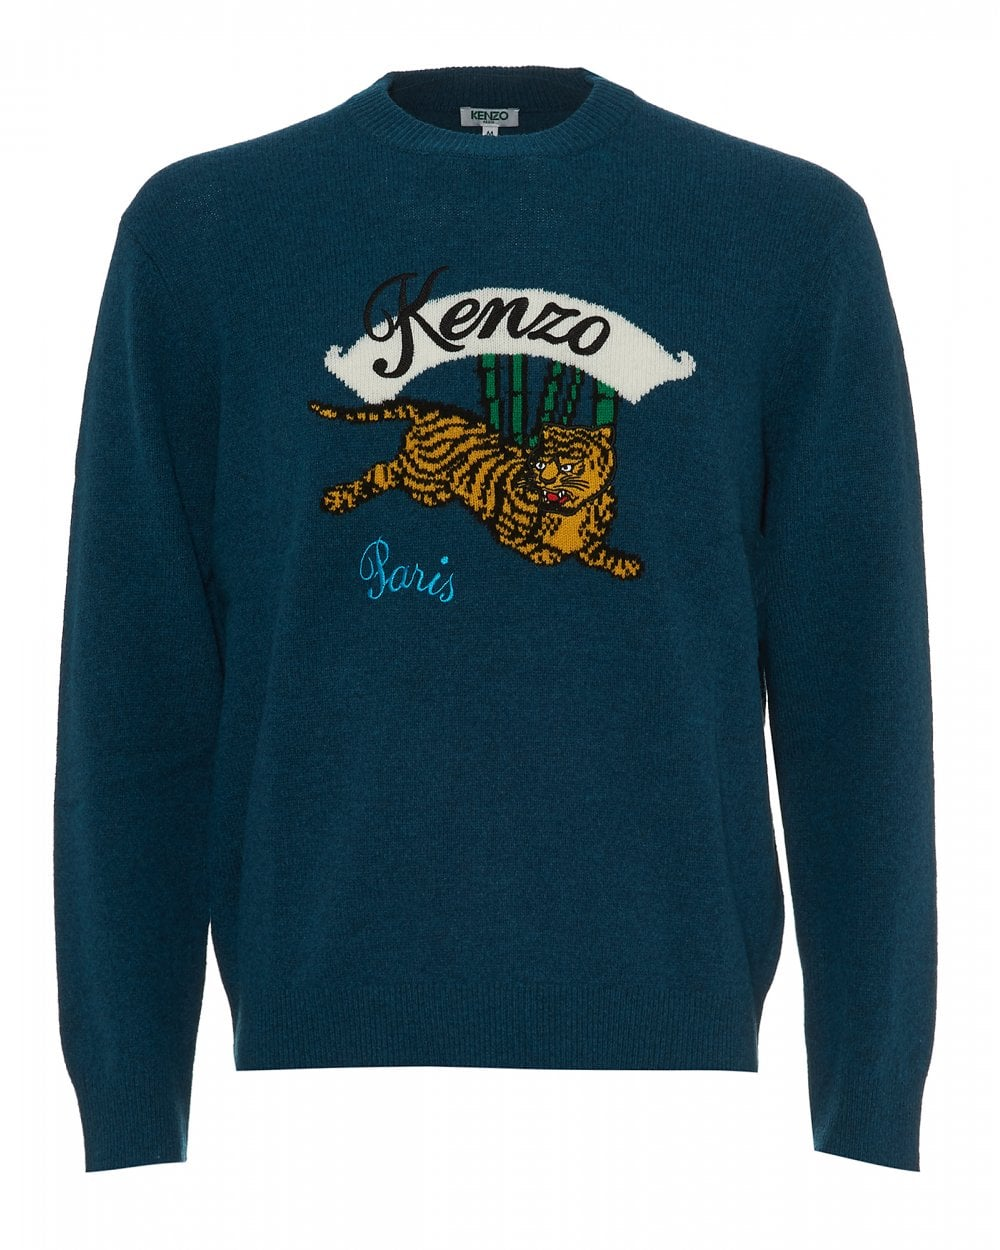 6db1dd284 Kenzo Mens Jumping Tiger Jumper, Petrol Blue Crew Neck Sweat